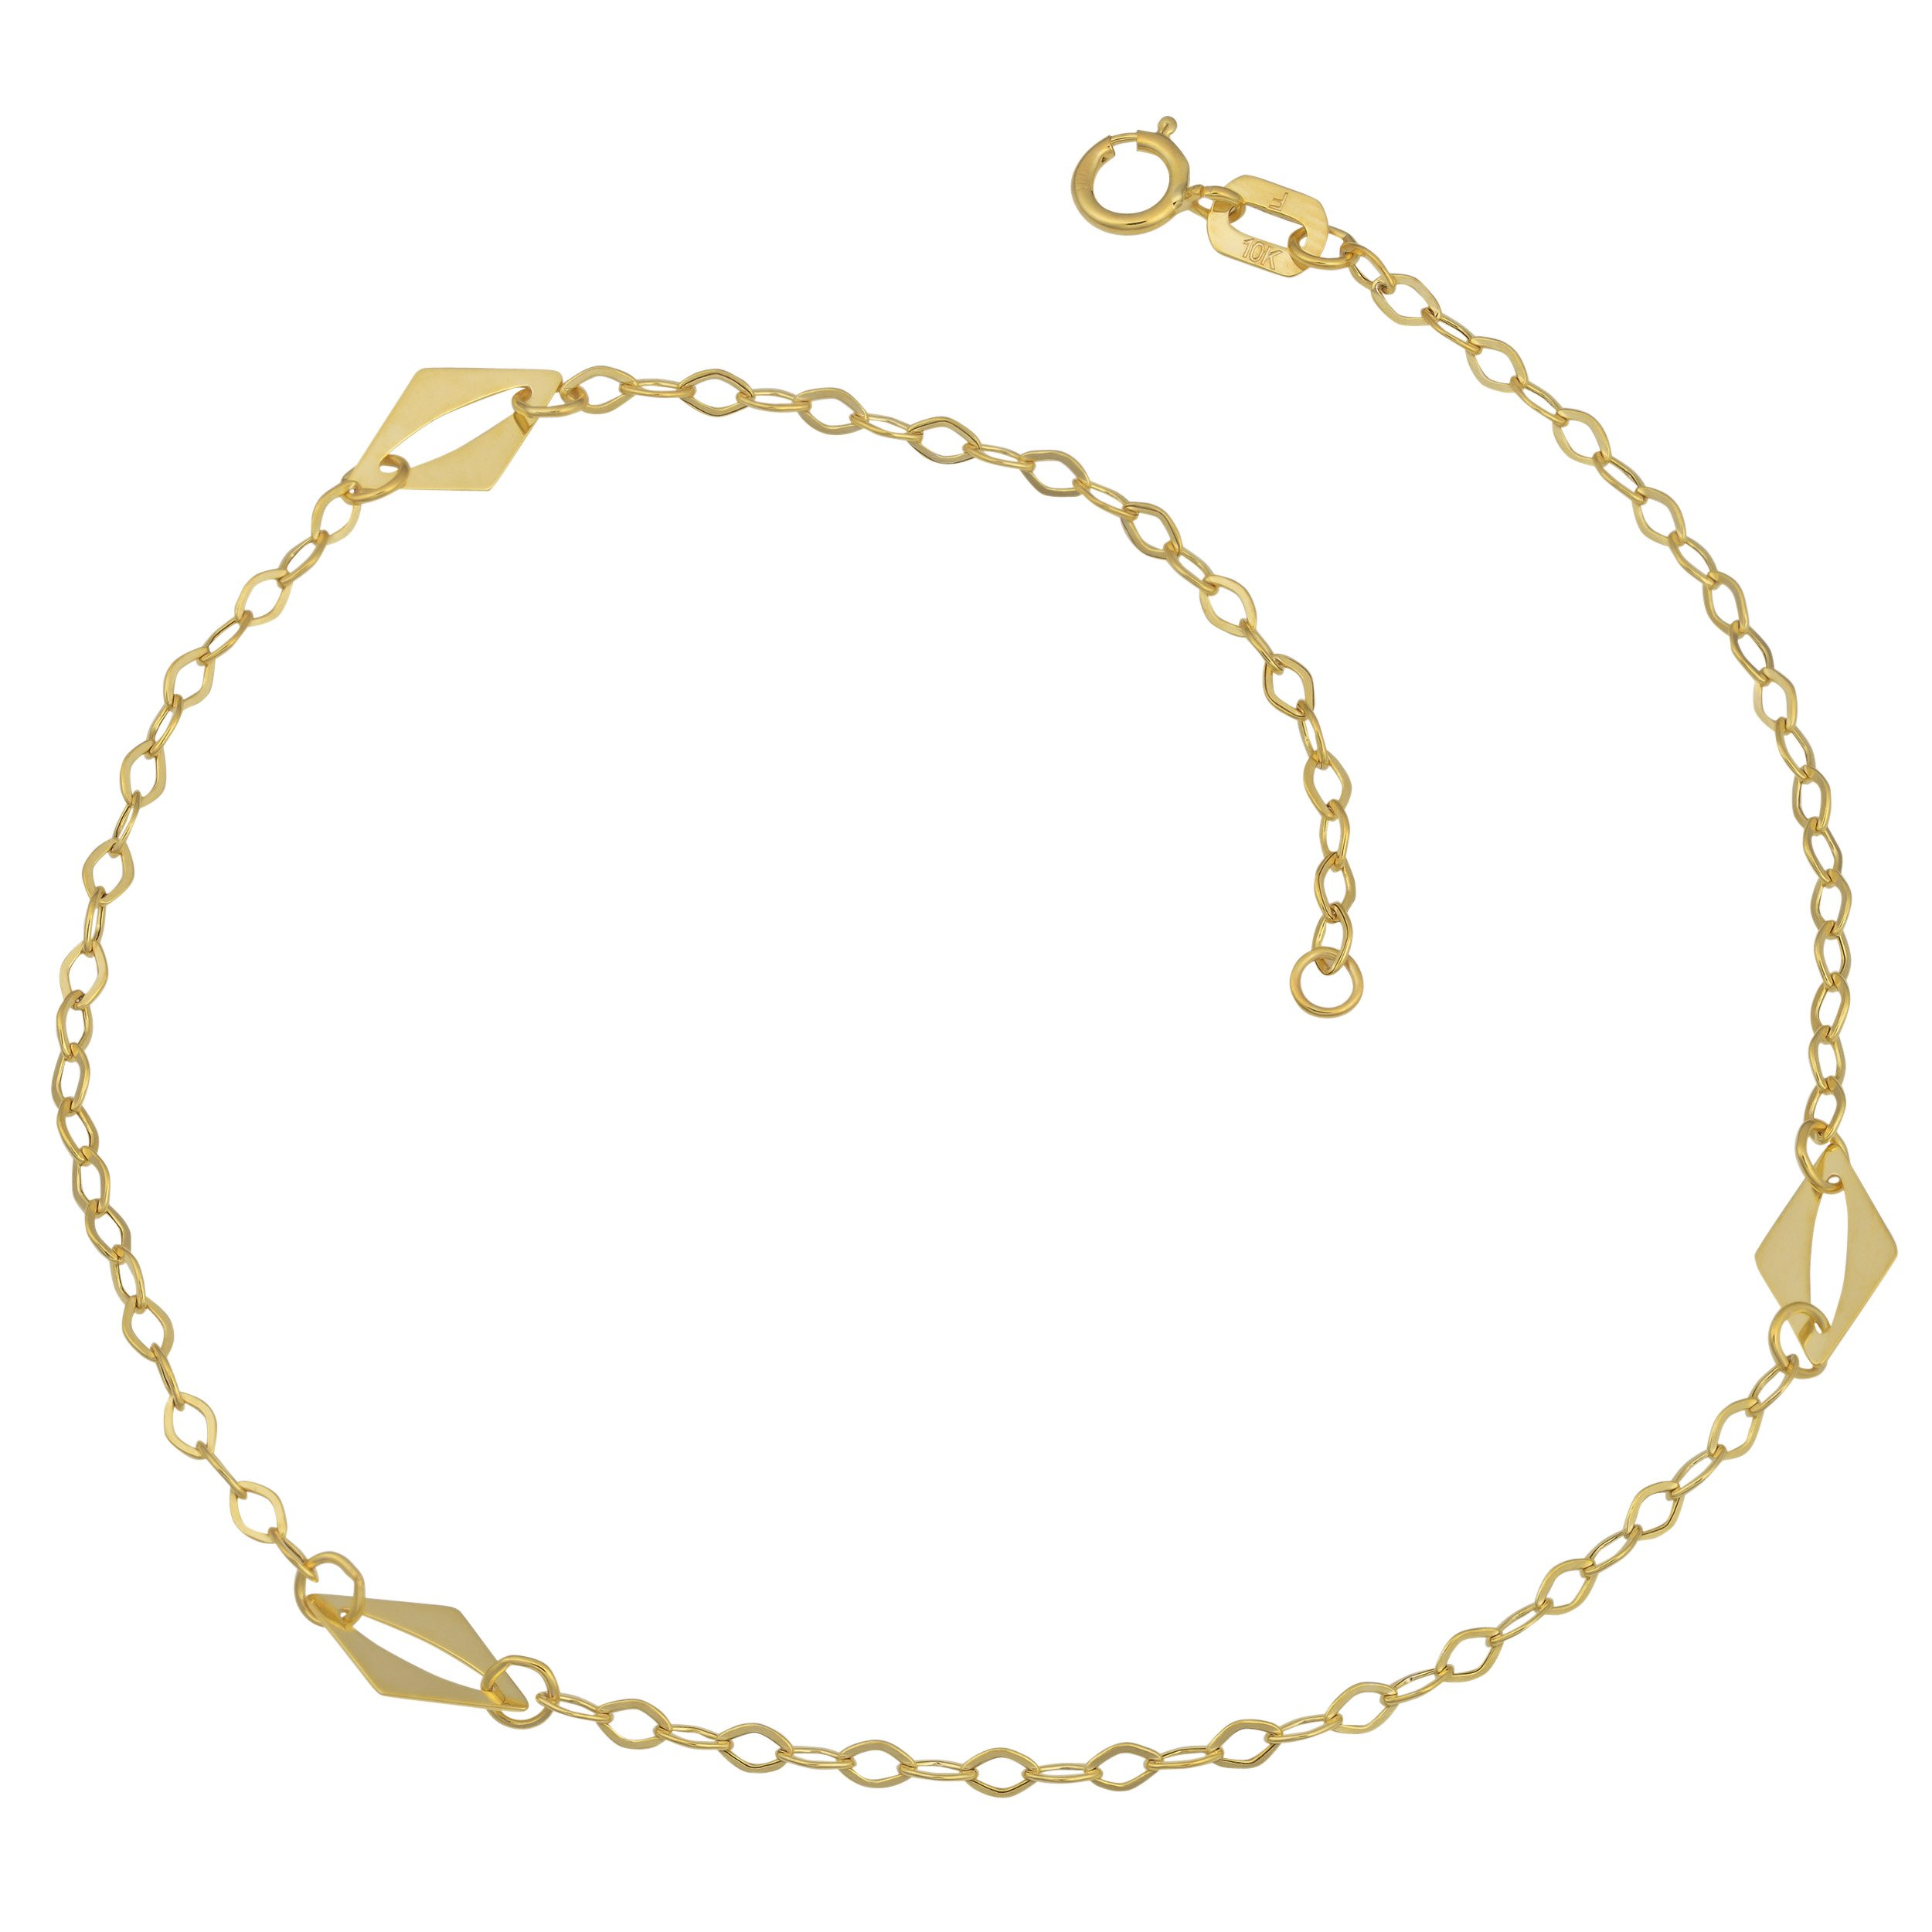 10k Yellow Gold High Polish Station Anklet (10 inch)